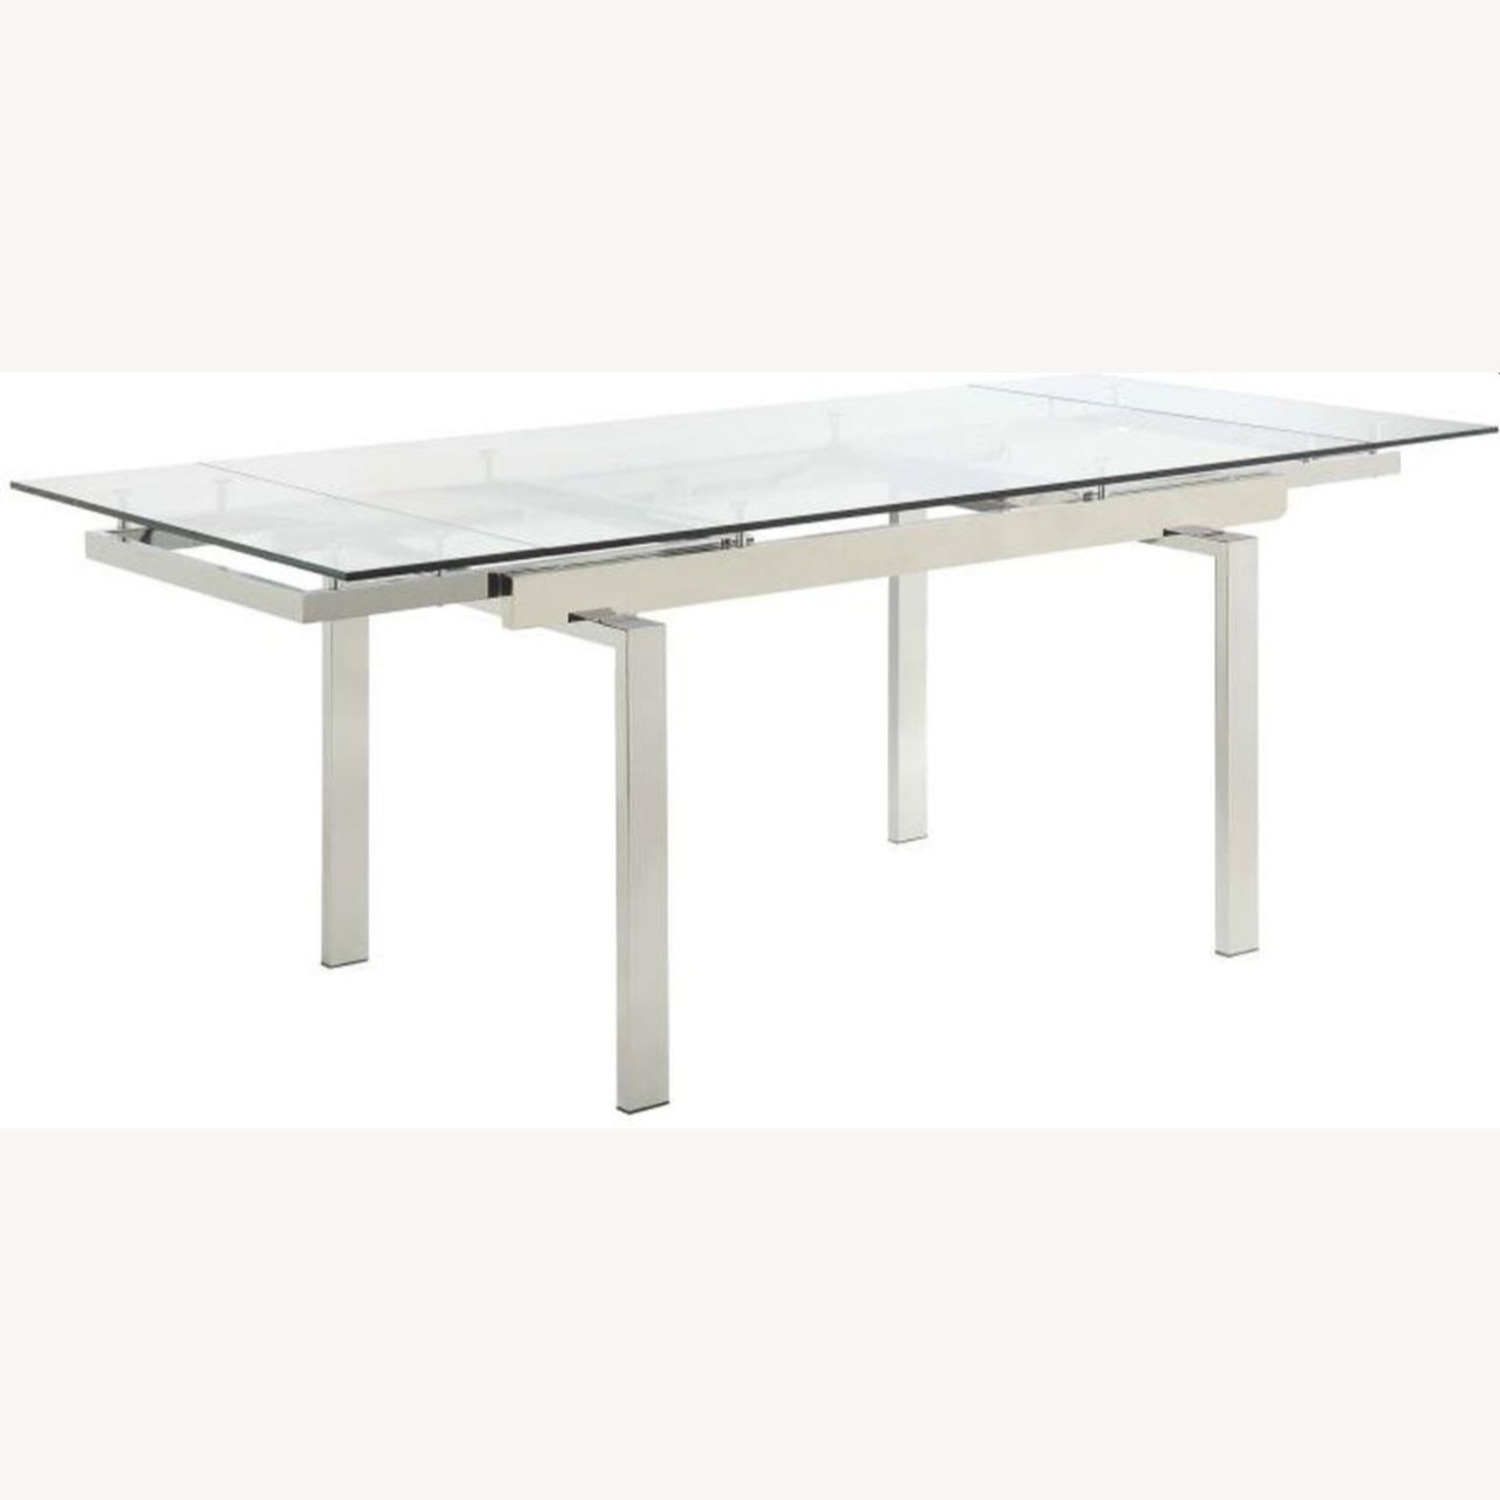 Modern Dining Table Polished In Chrome Finish - image-0